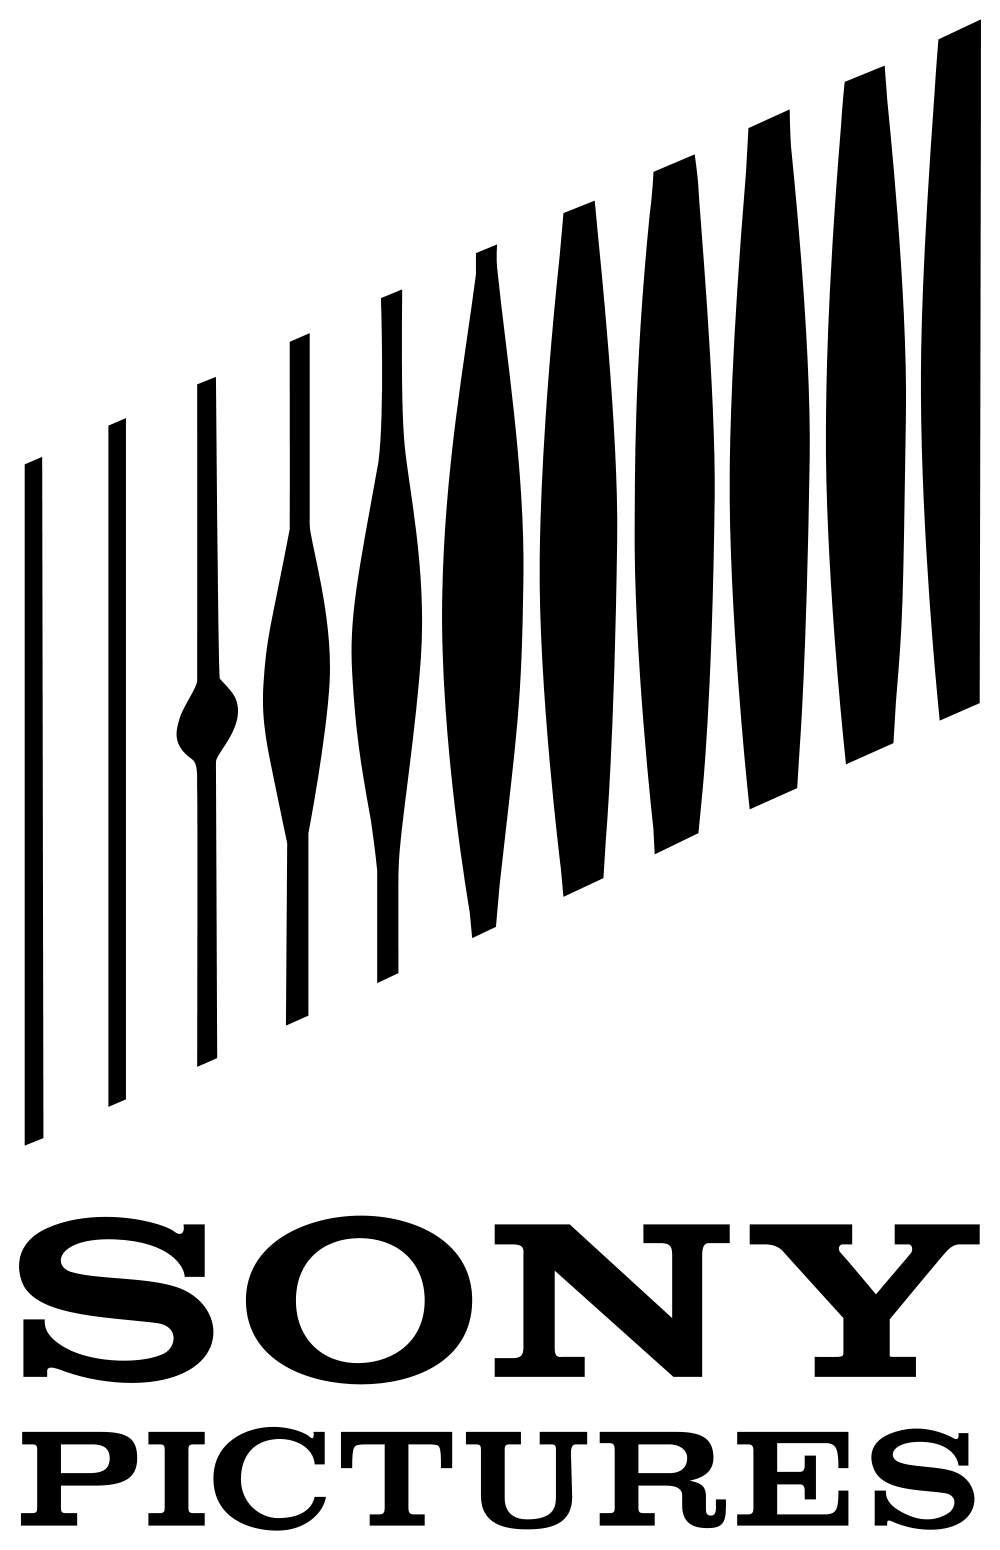 File:sony Pictures Logo.png - Sony, Transparent background PNG HD thumbnail